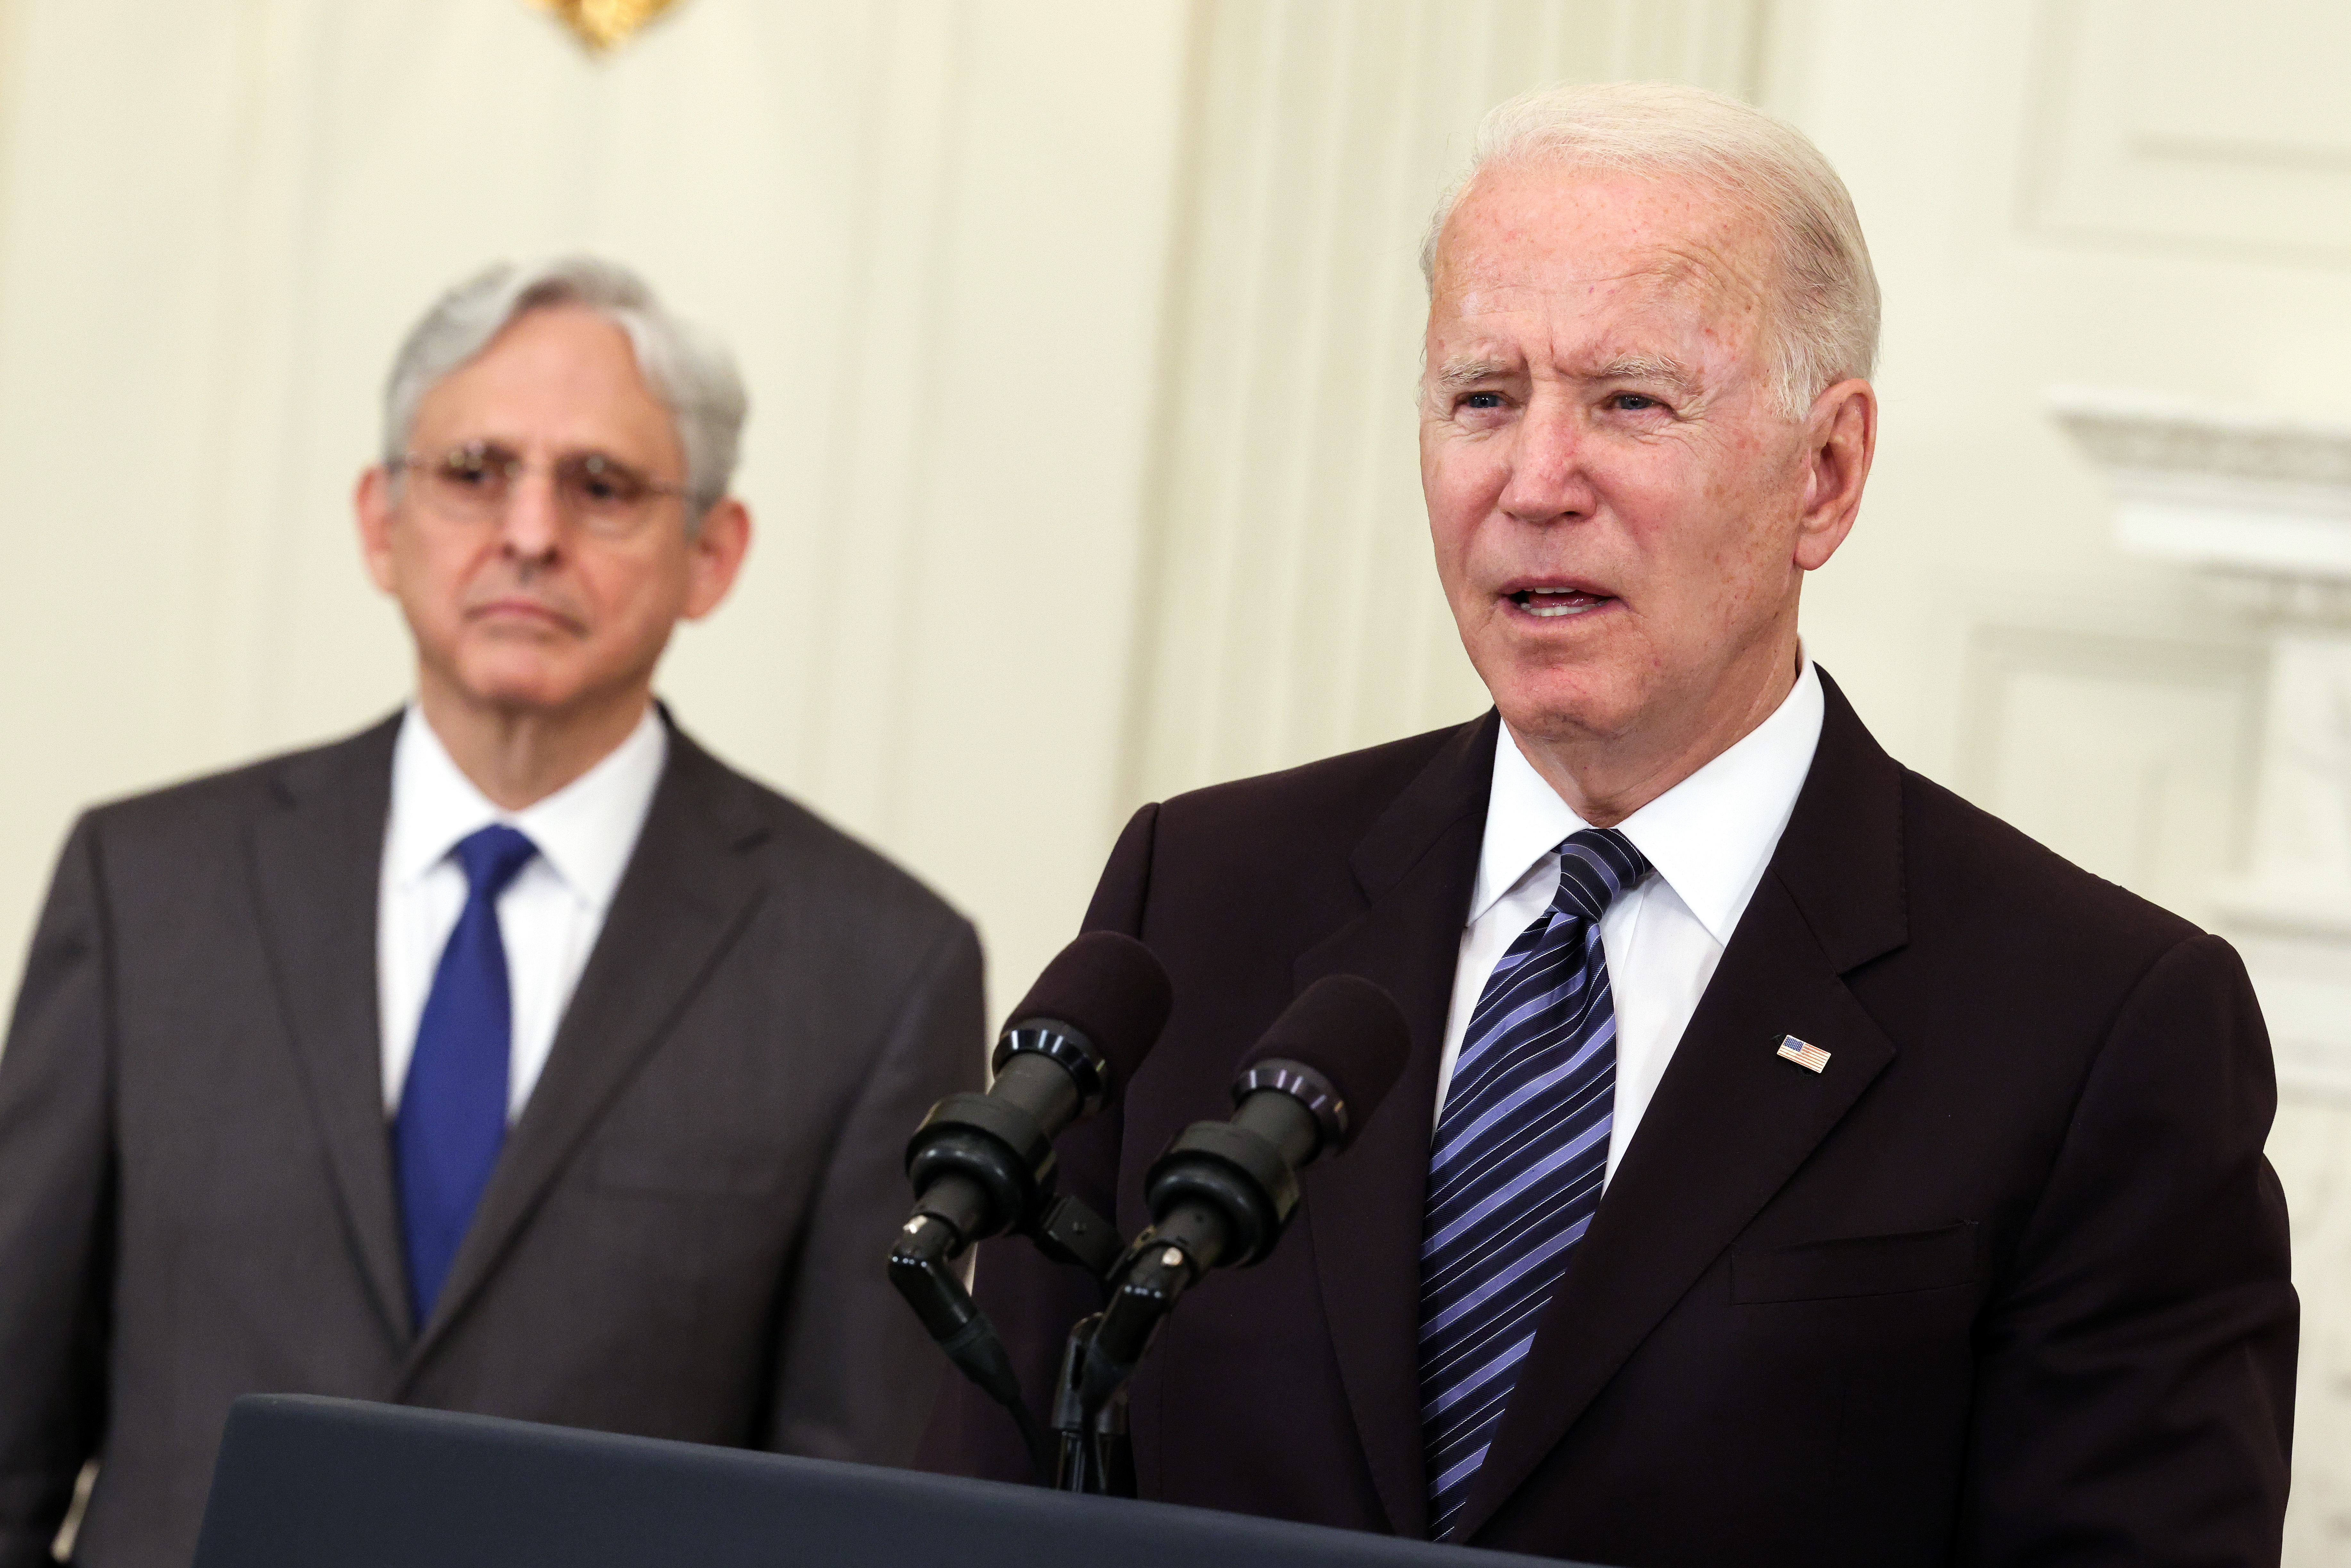 WASHINGTON, DC - JUNE 23: U.S. President Joe Biden, joined Attorney General Merrick Garland, speaks on gun crime prevention measures at the White House on June 23, 2021 in Washington, DC. Biden outlined new measures to curb gun violence including stopping the flow illegal guns and targeting rogue gun dealers. (Photo by Kevin Dietsch/Getty Images) ORG XMIT: 775670281